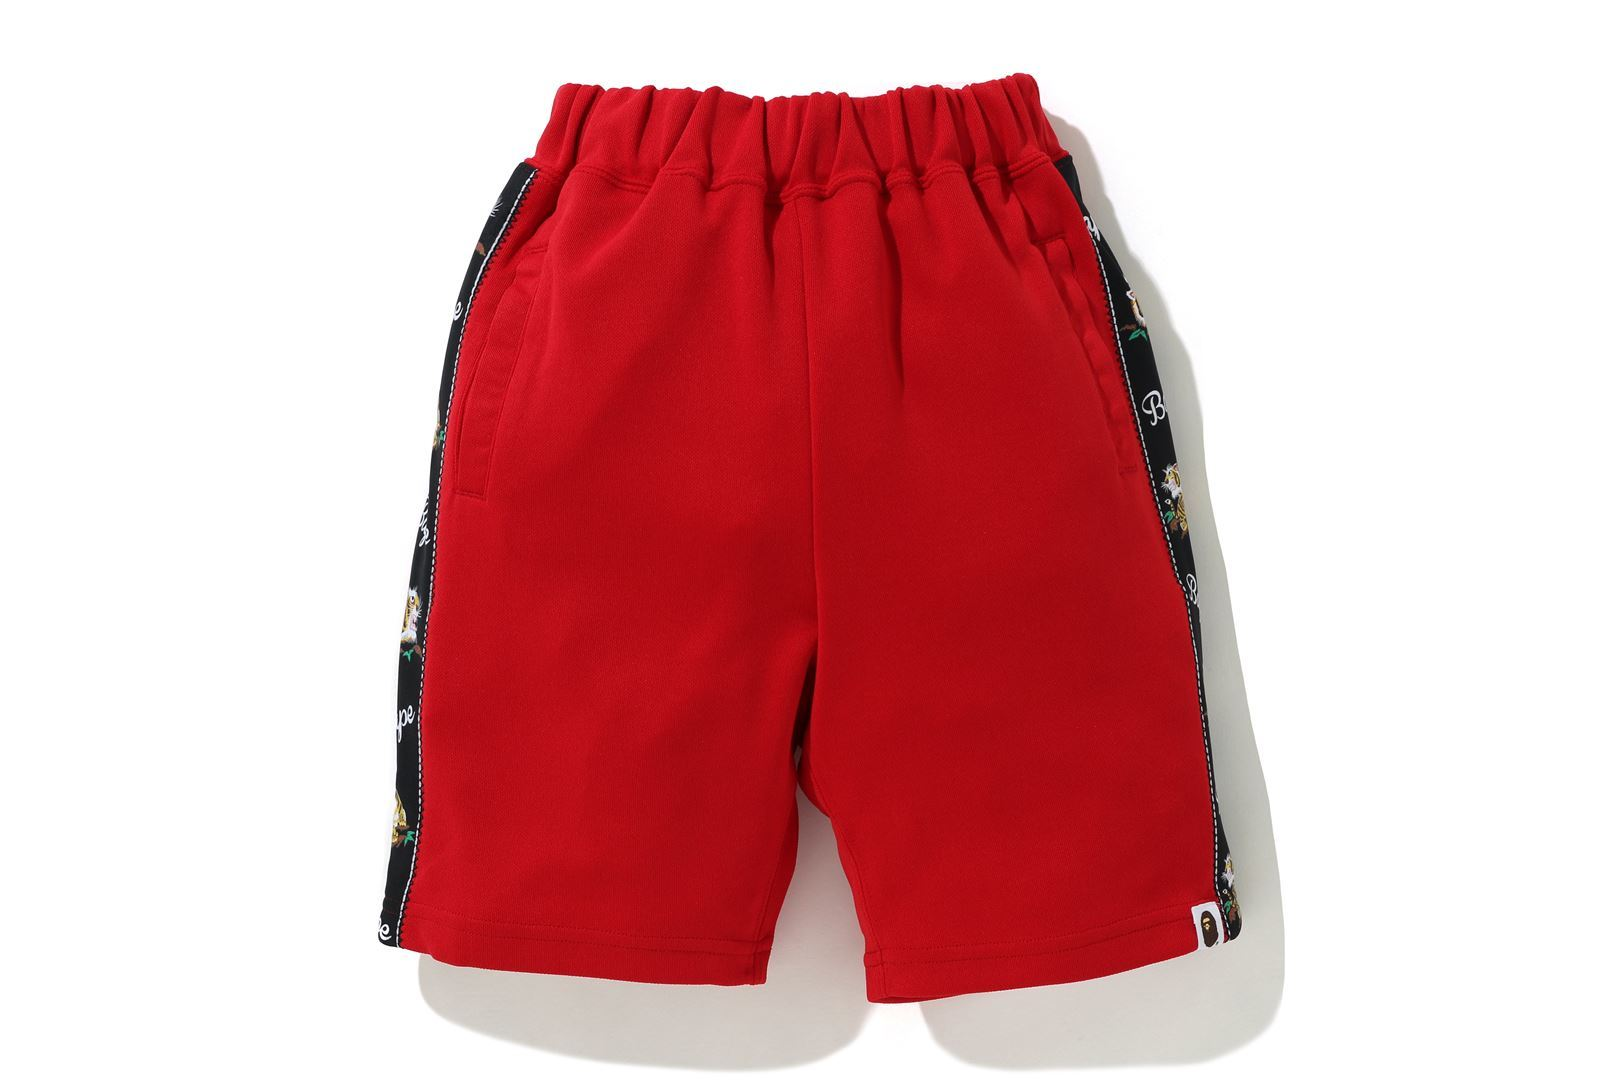 TIGER TAPE JERSEY SHORTS_a0174495_14113991.jpg